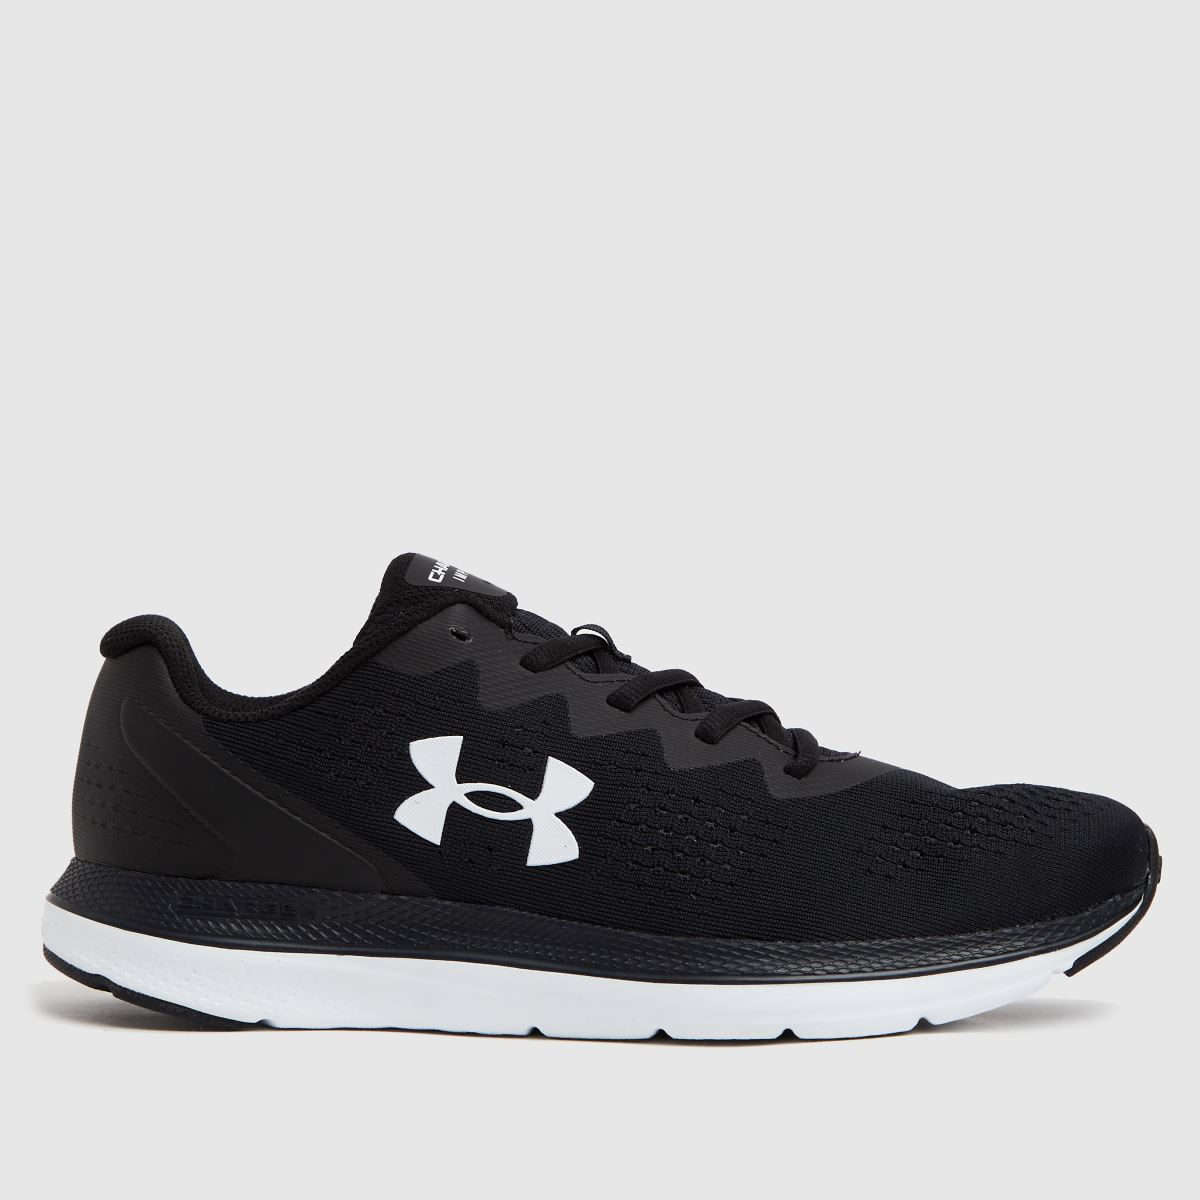 Under Armour Black & White Charged Impulse 2 Trainers